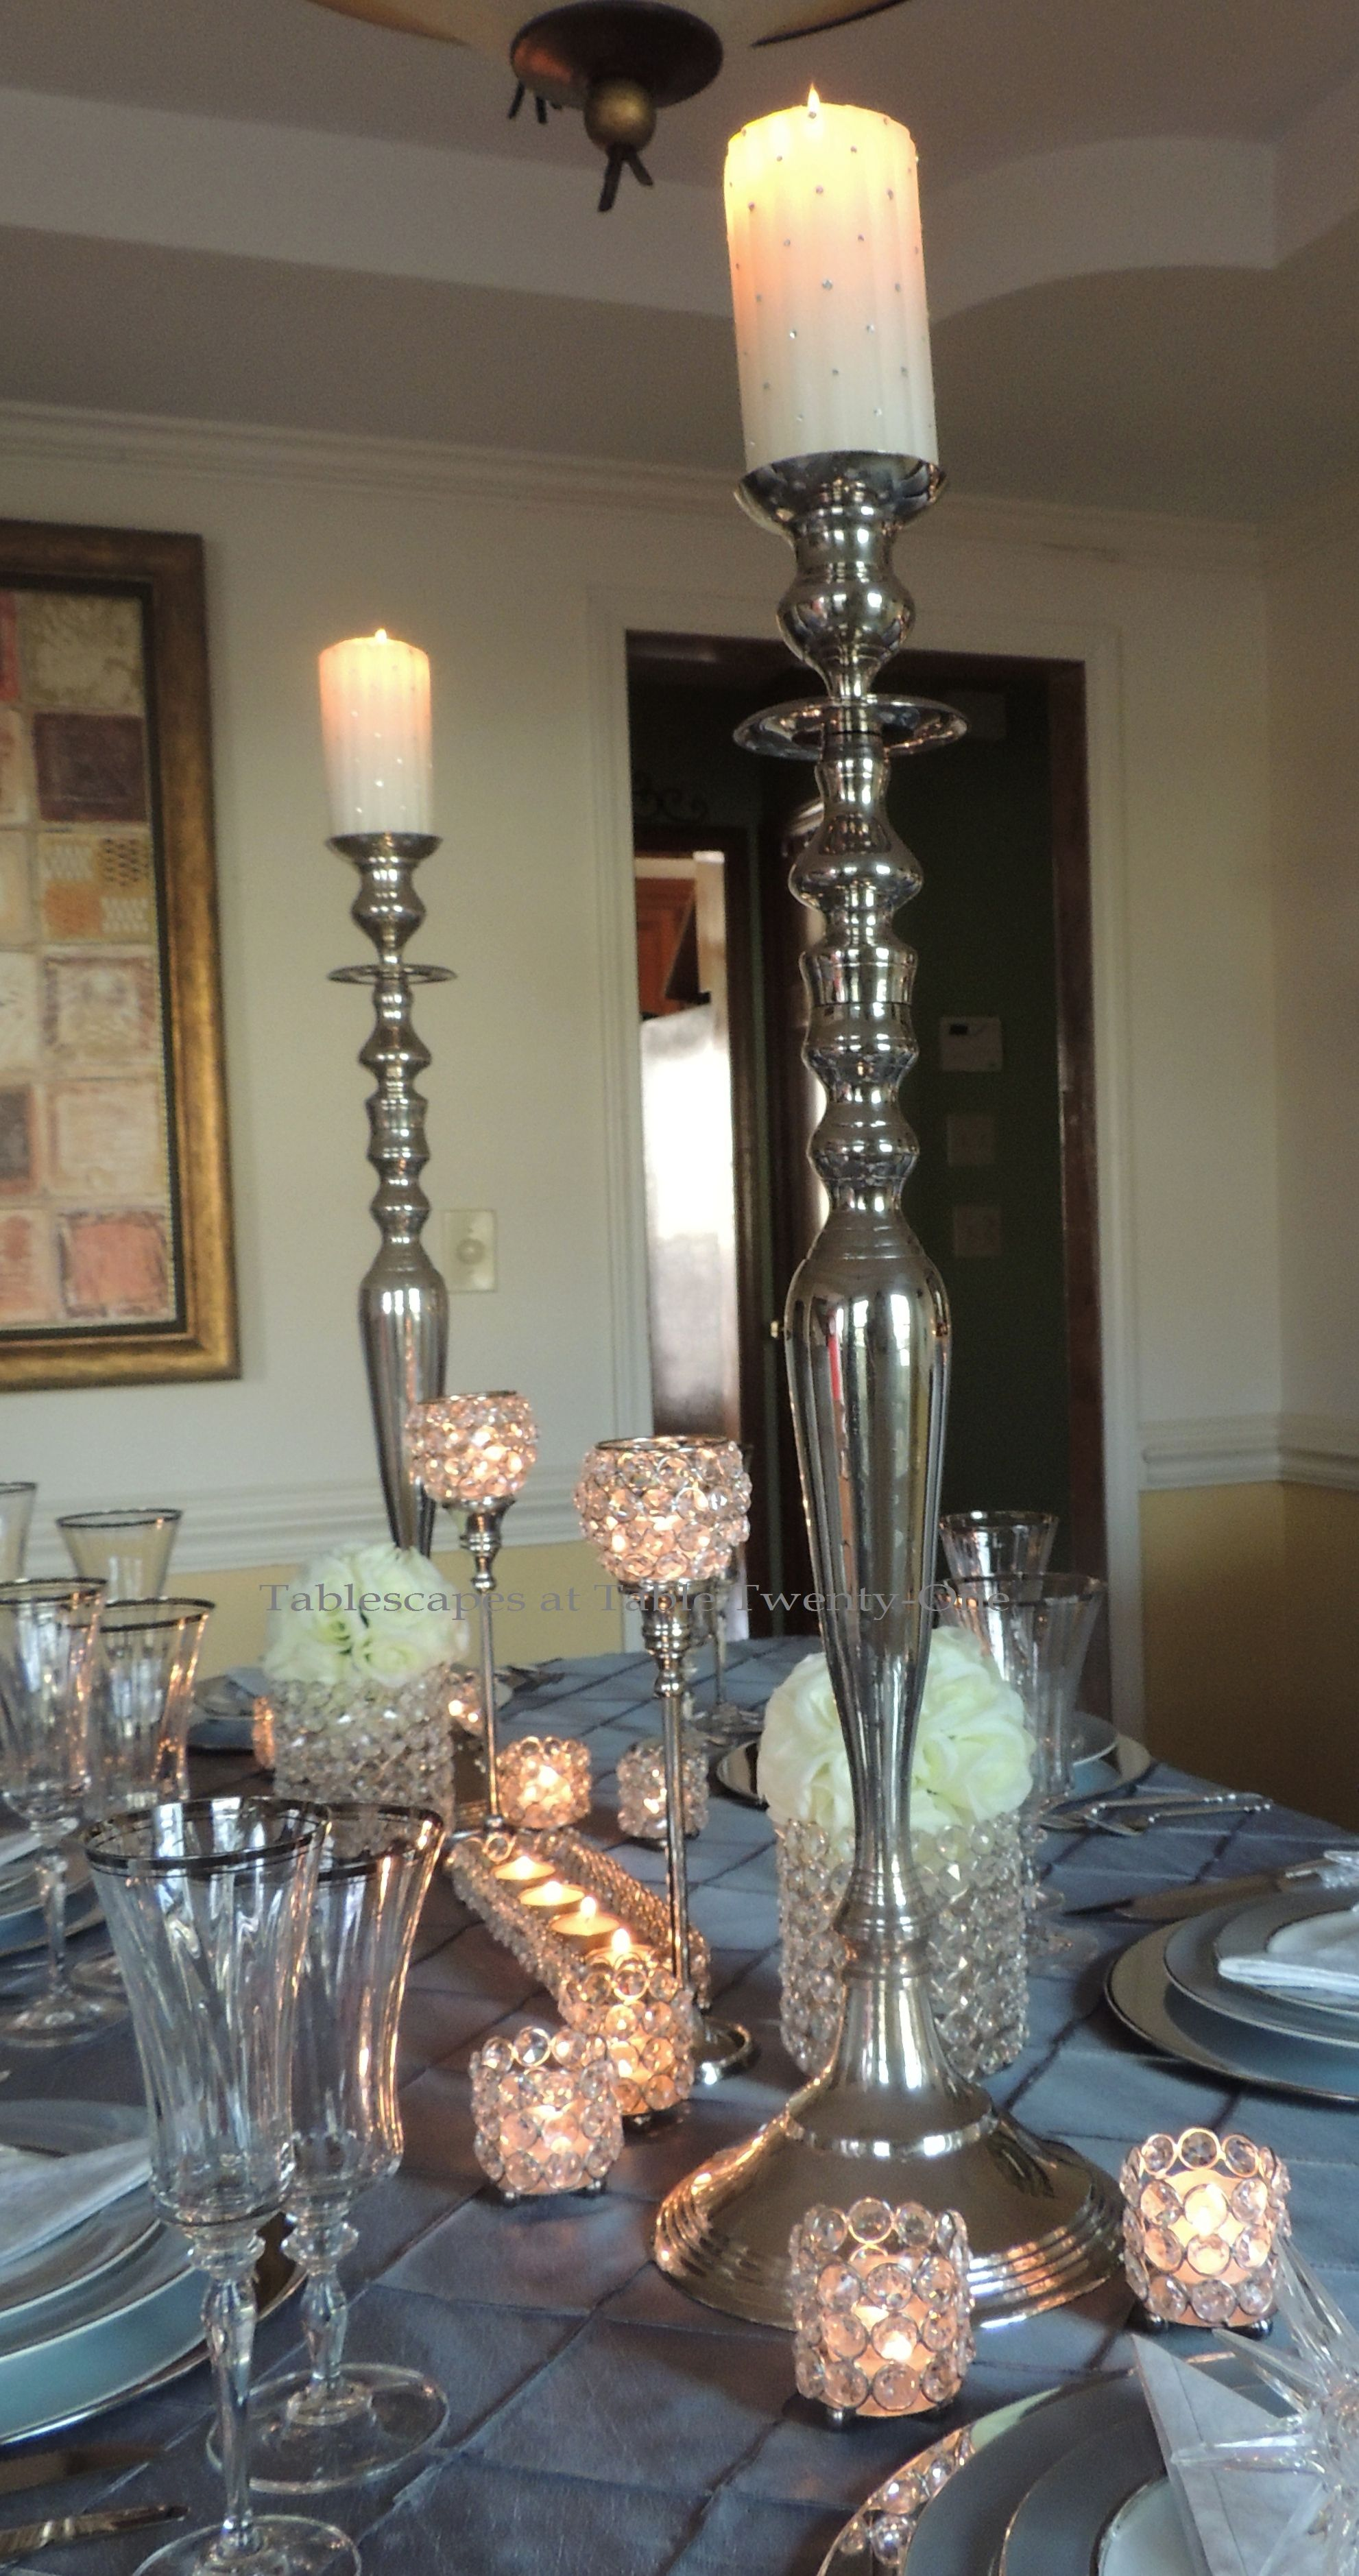 Tablescapes at Table Twenty-One, Platinum New Year's Eve Wedding: Full centerpiece